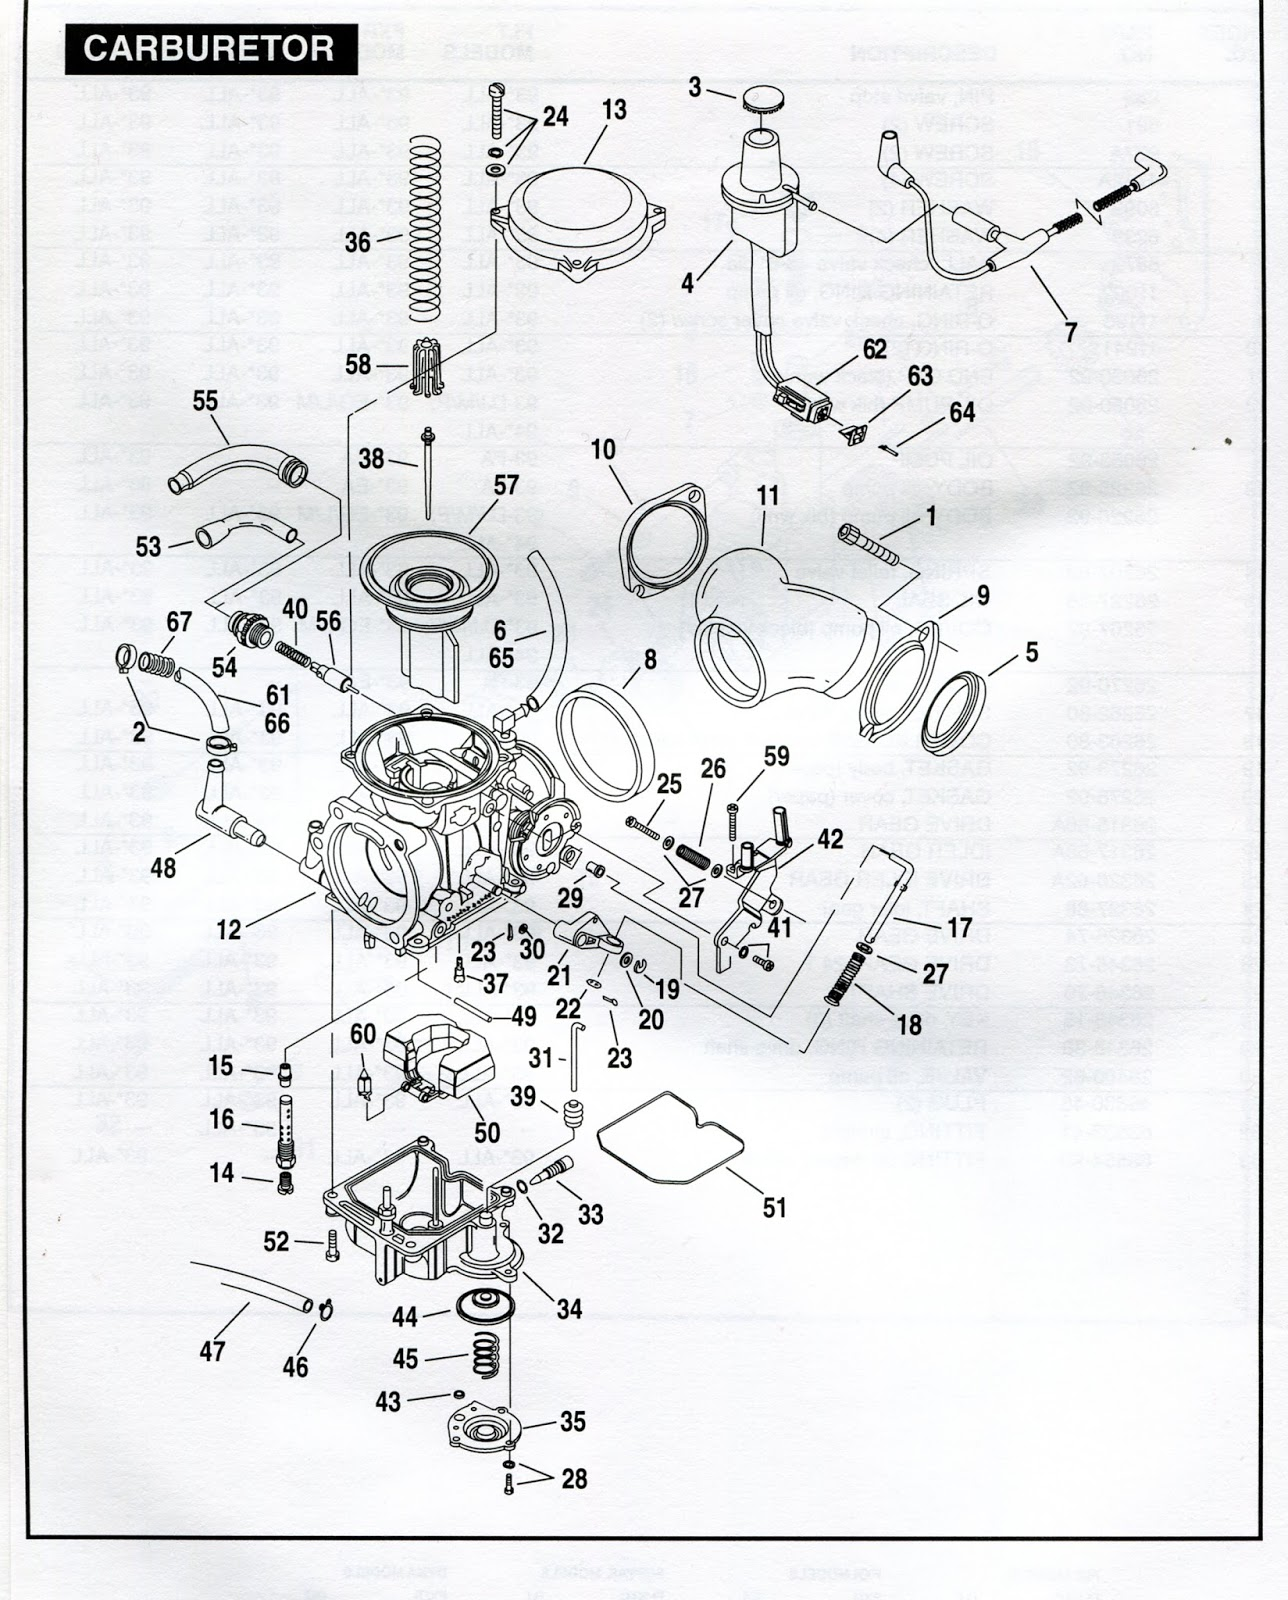 small resolution of tech files 1993 94 harley davidson carb diagrams u0026 fuel tank logosthe keihin cv design